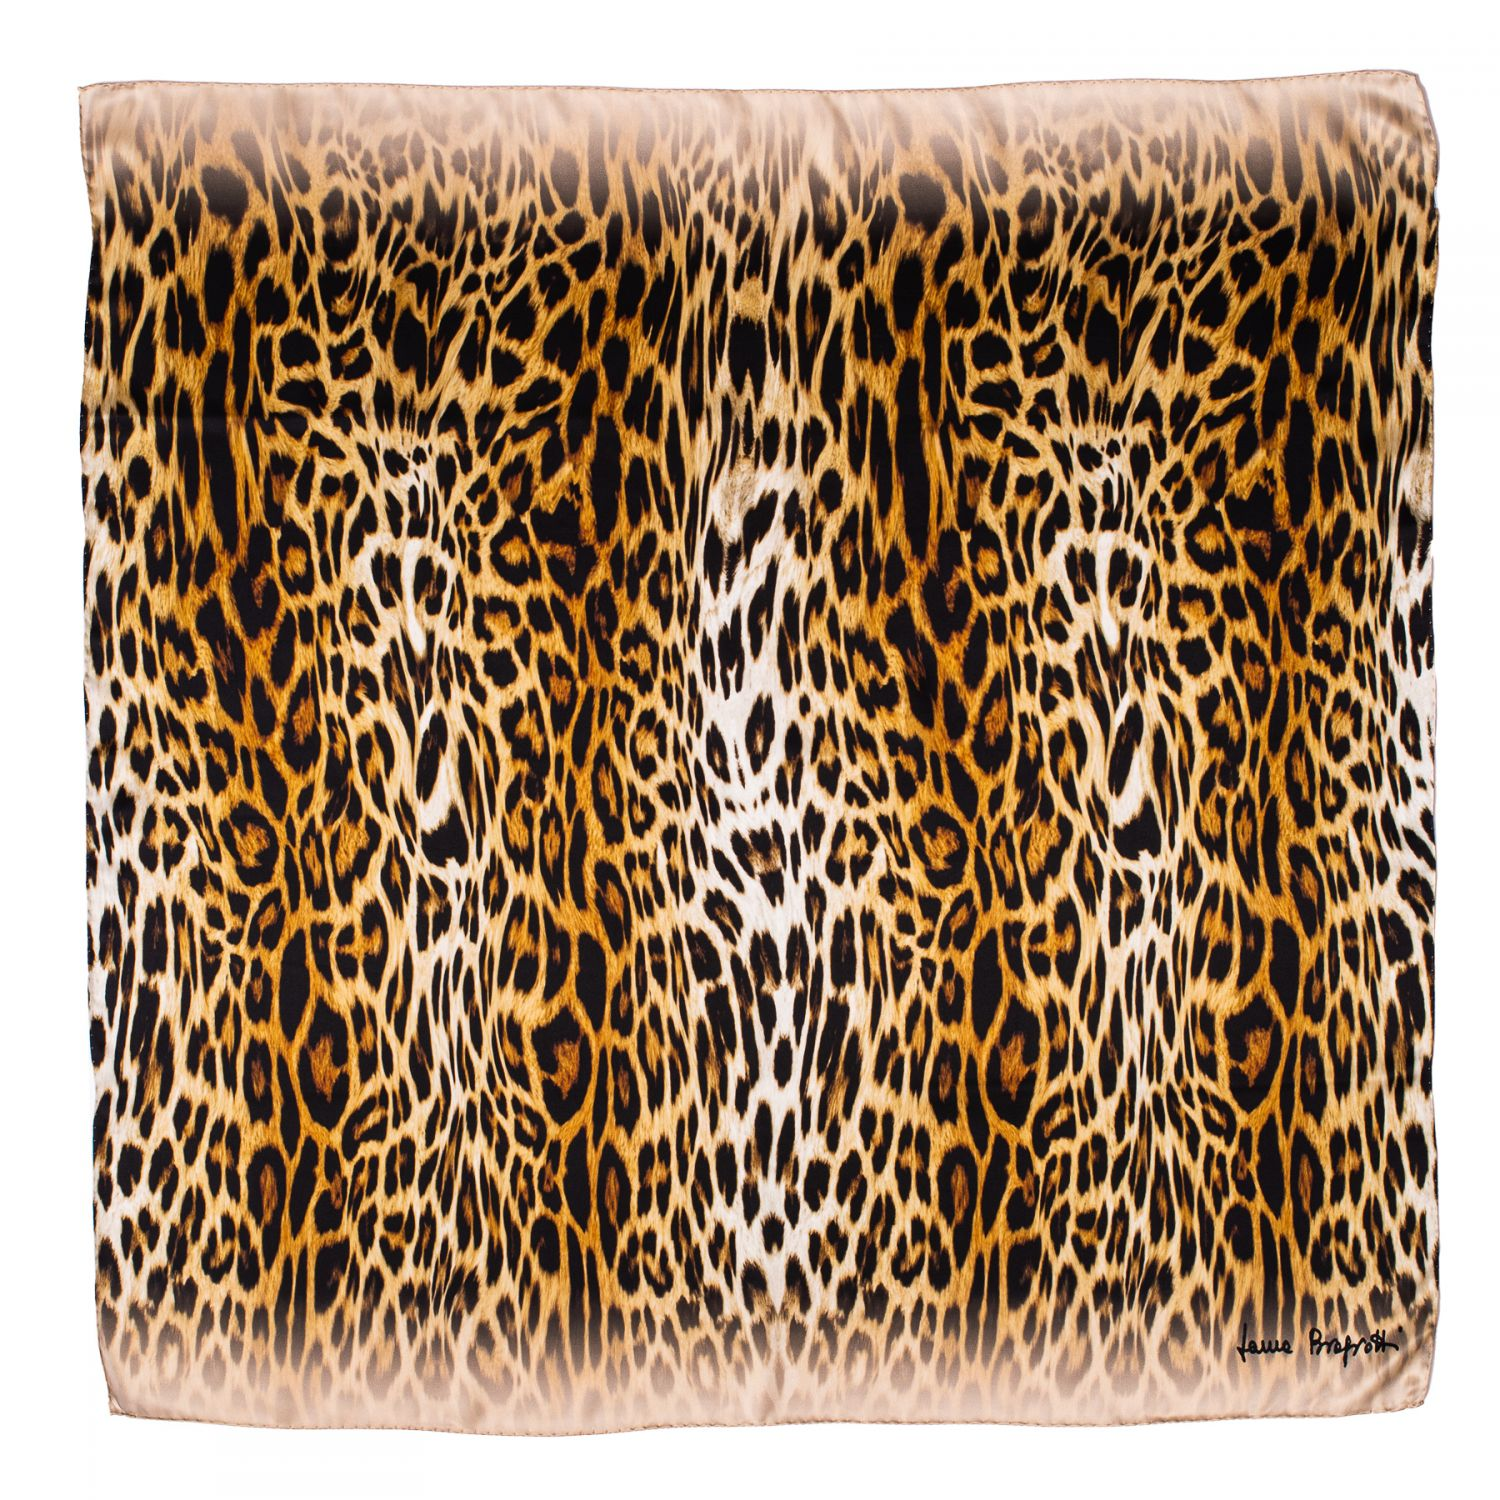 Esarfa matase True Animal Print